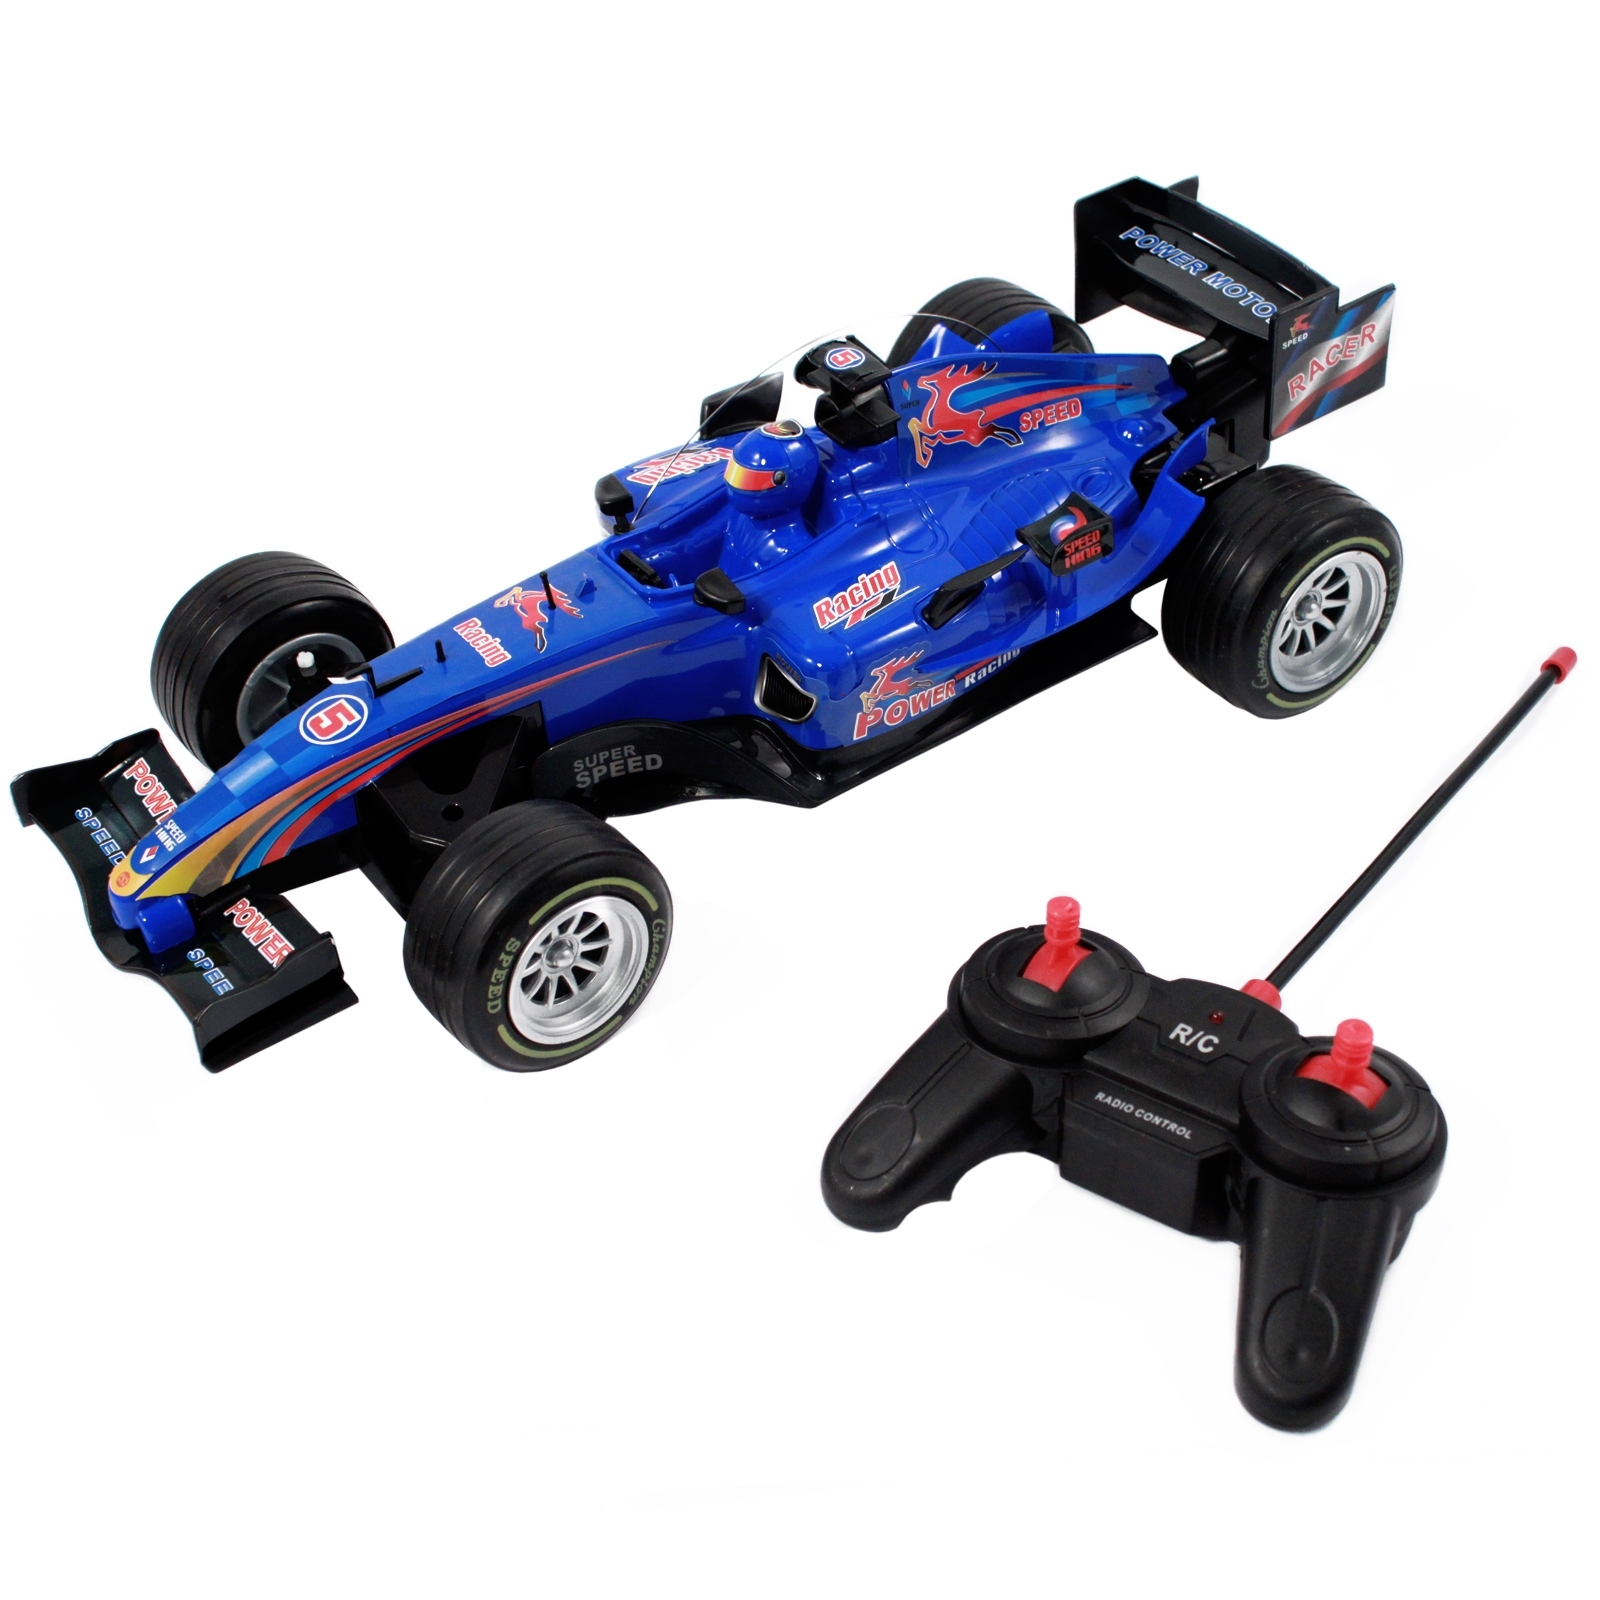 pretend play race car with remote control for kids and boys in blue red